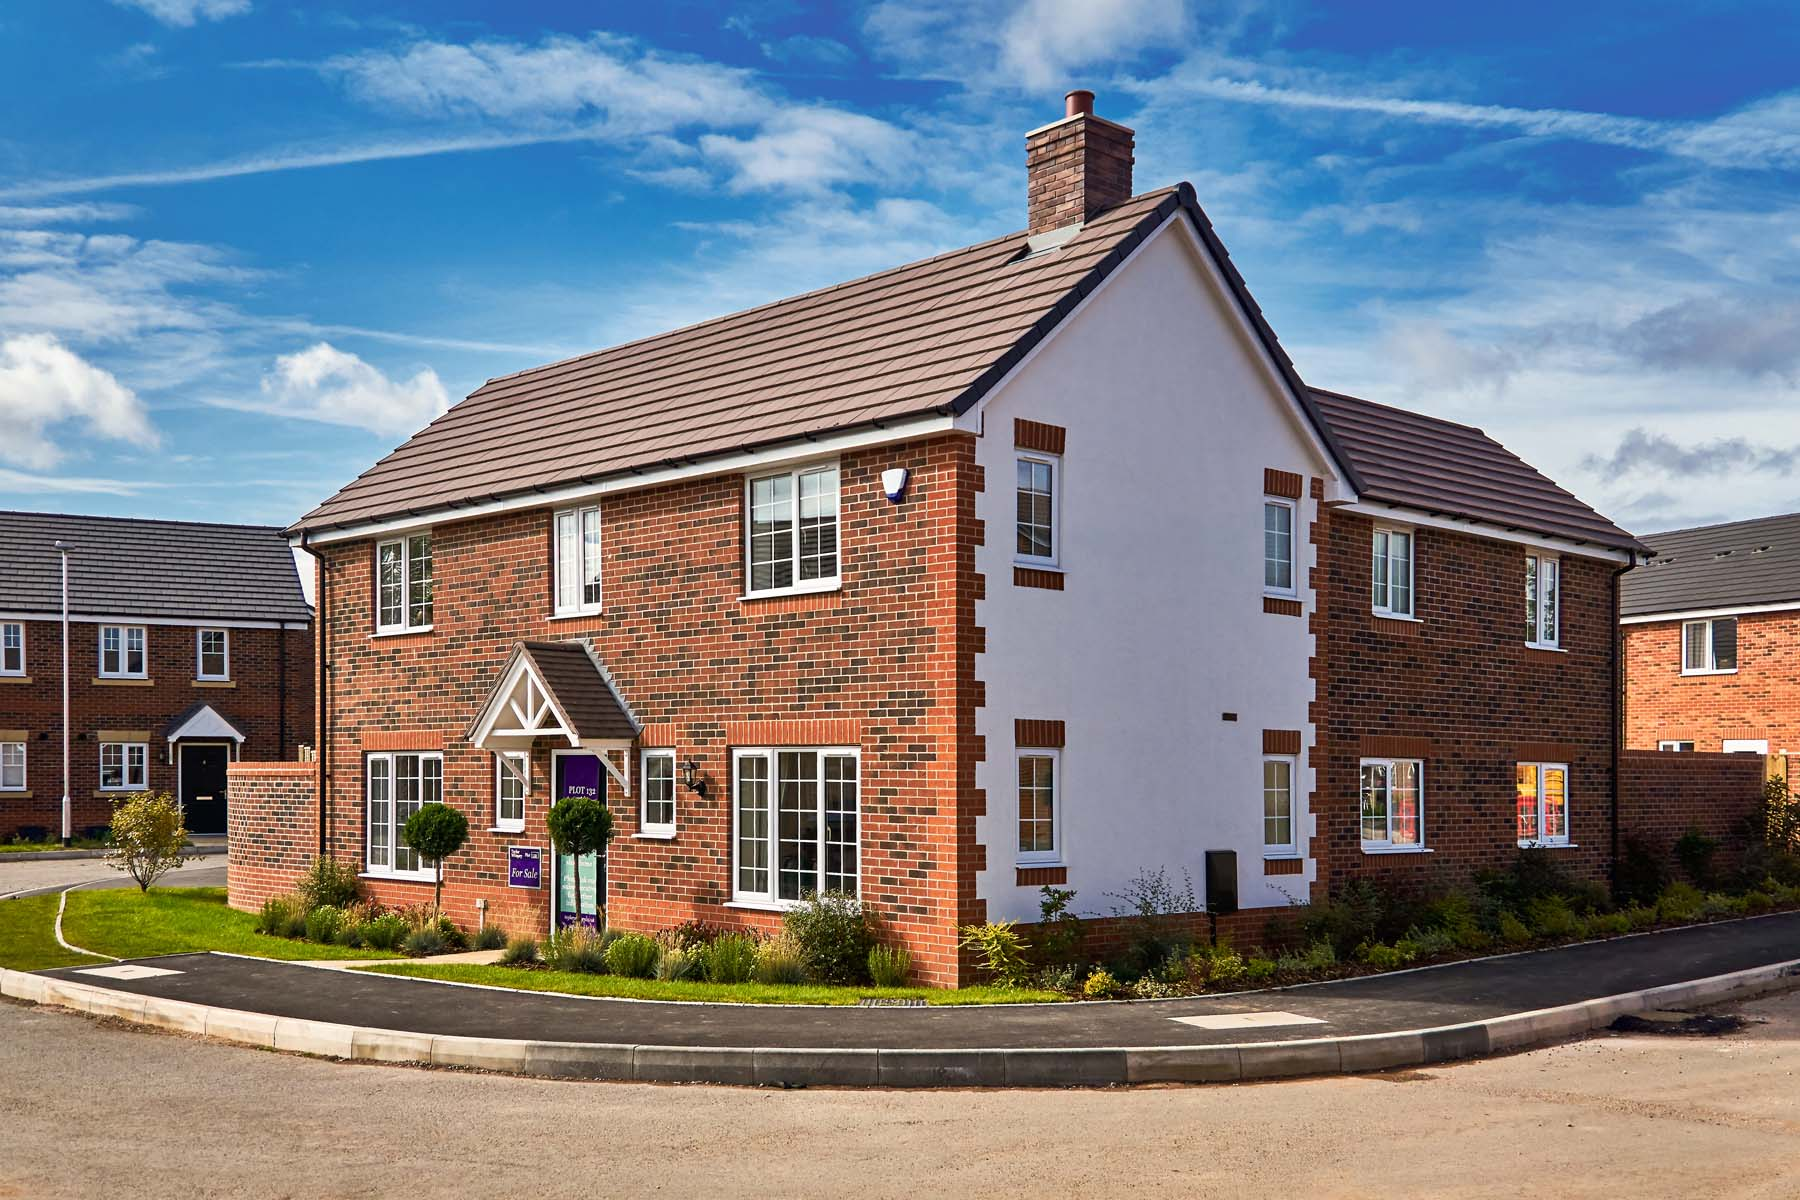 Wondrous Wheatfield Manor New Homes In Codsall Taylor Wimpey Download Free Architecture Designs Rallybritishbridgeorg